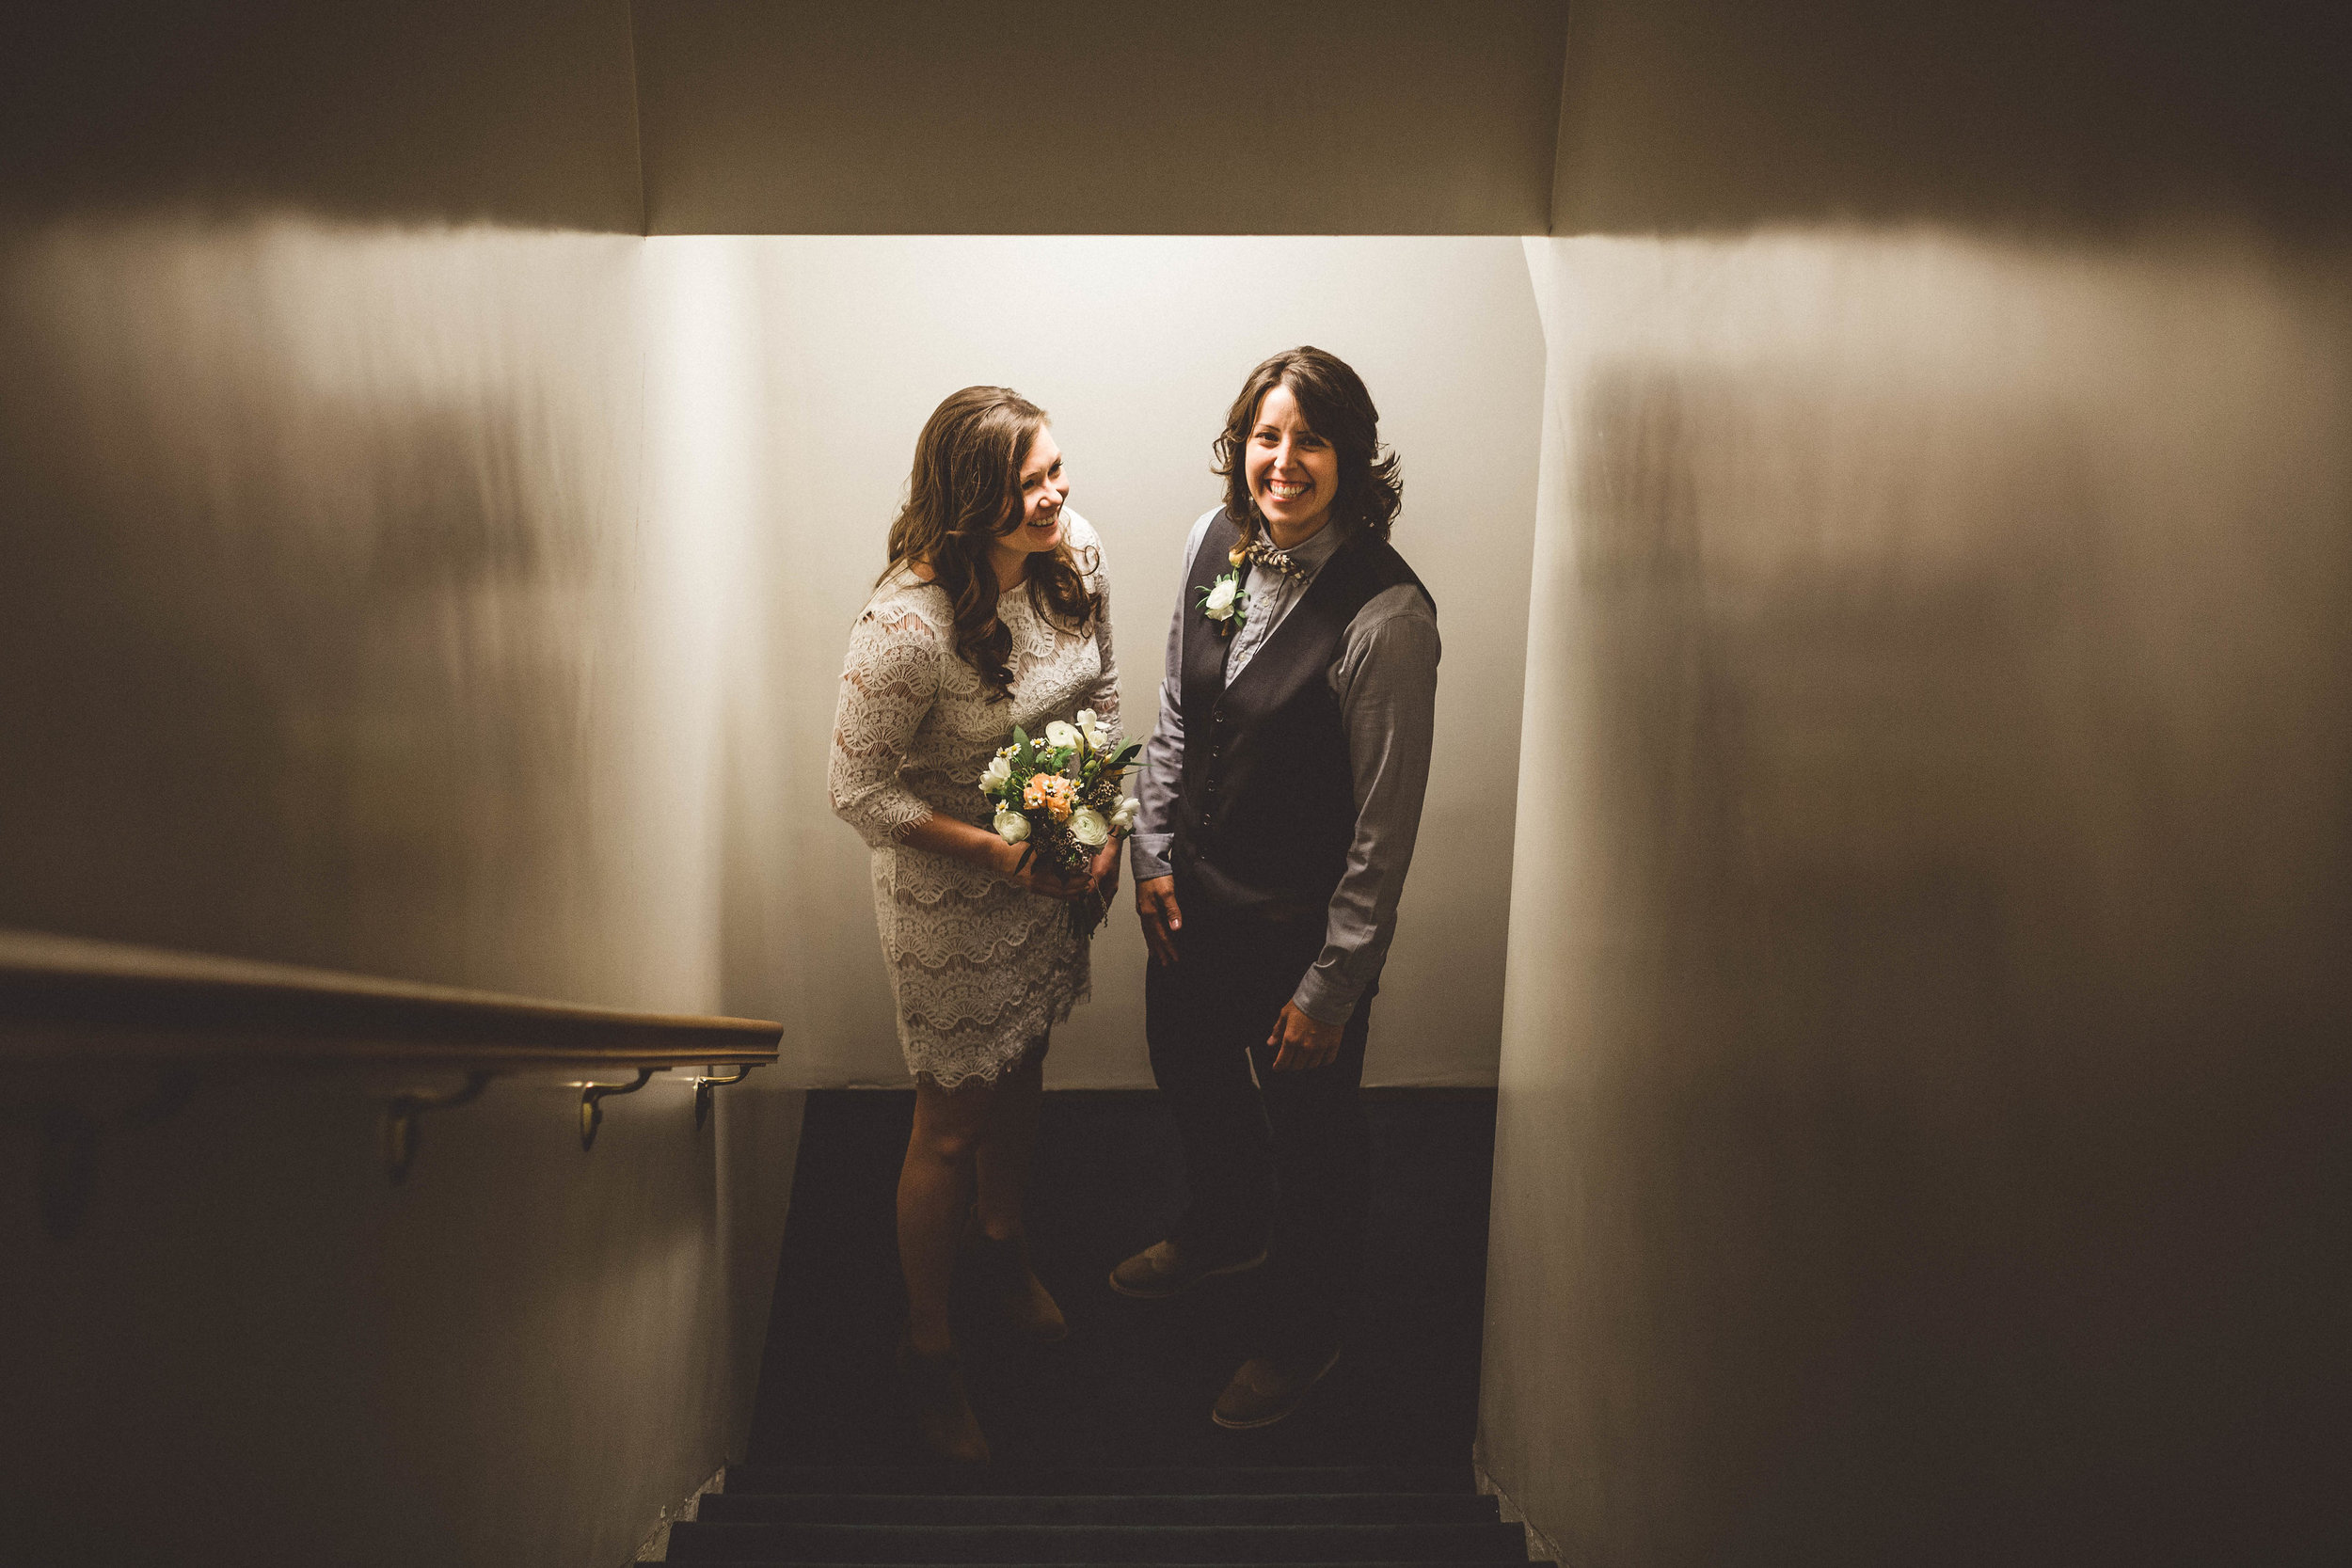 becky-and-michelle-santa-ana-courthouse-wedding3.jpg